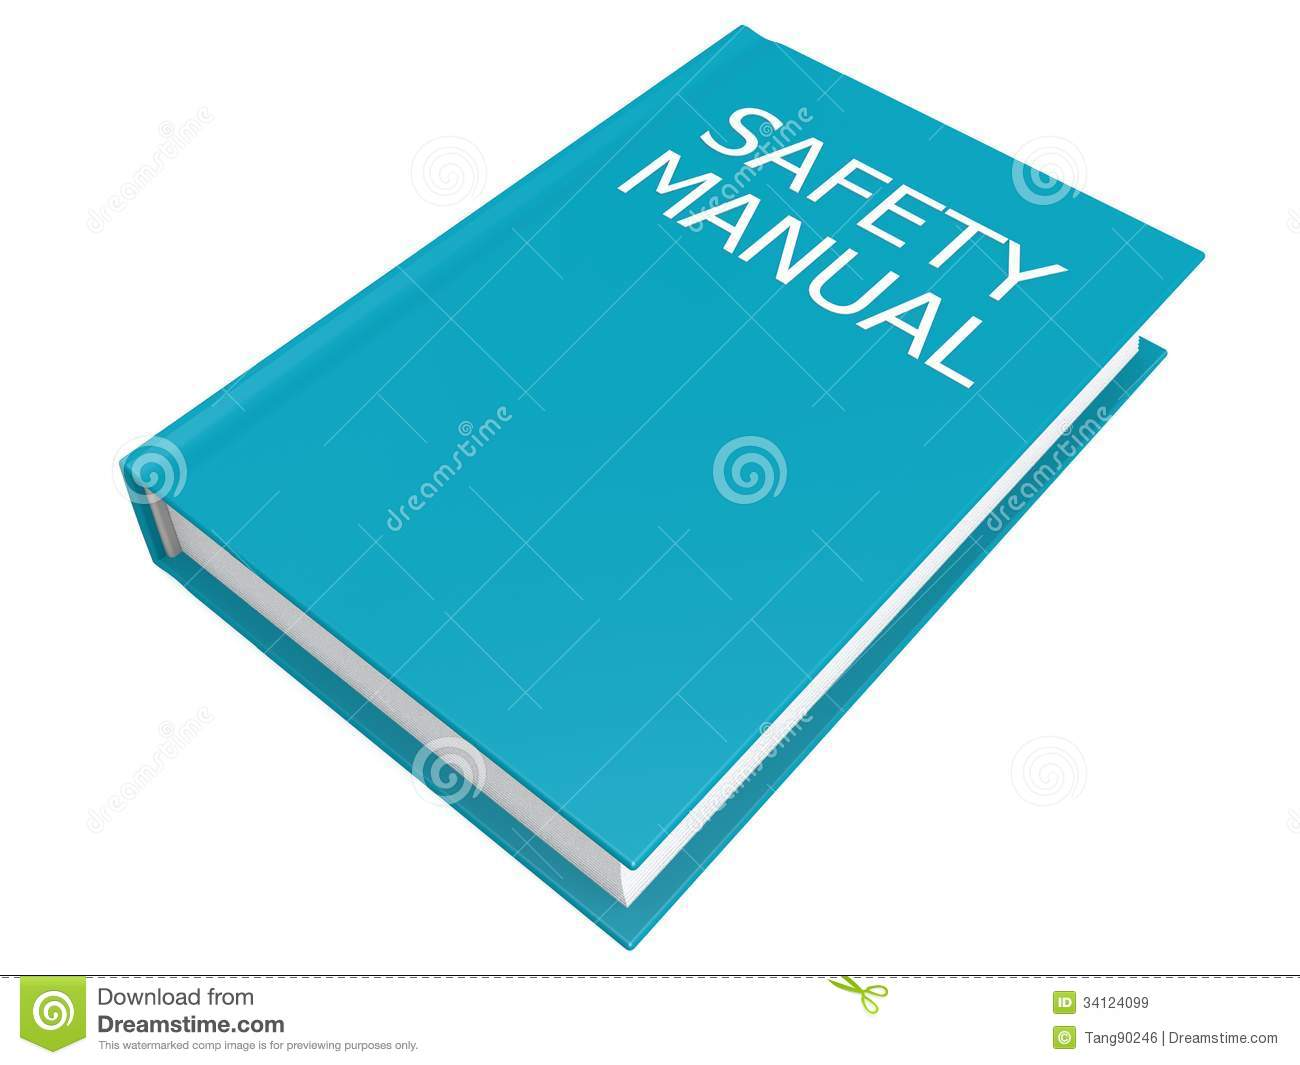 Amazing More Similar Stock Images Of `Safety Manual`